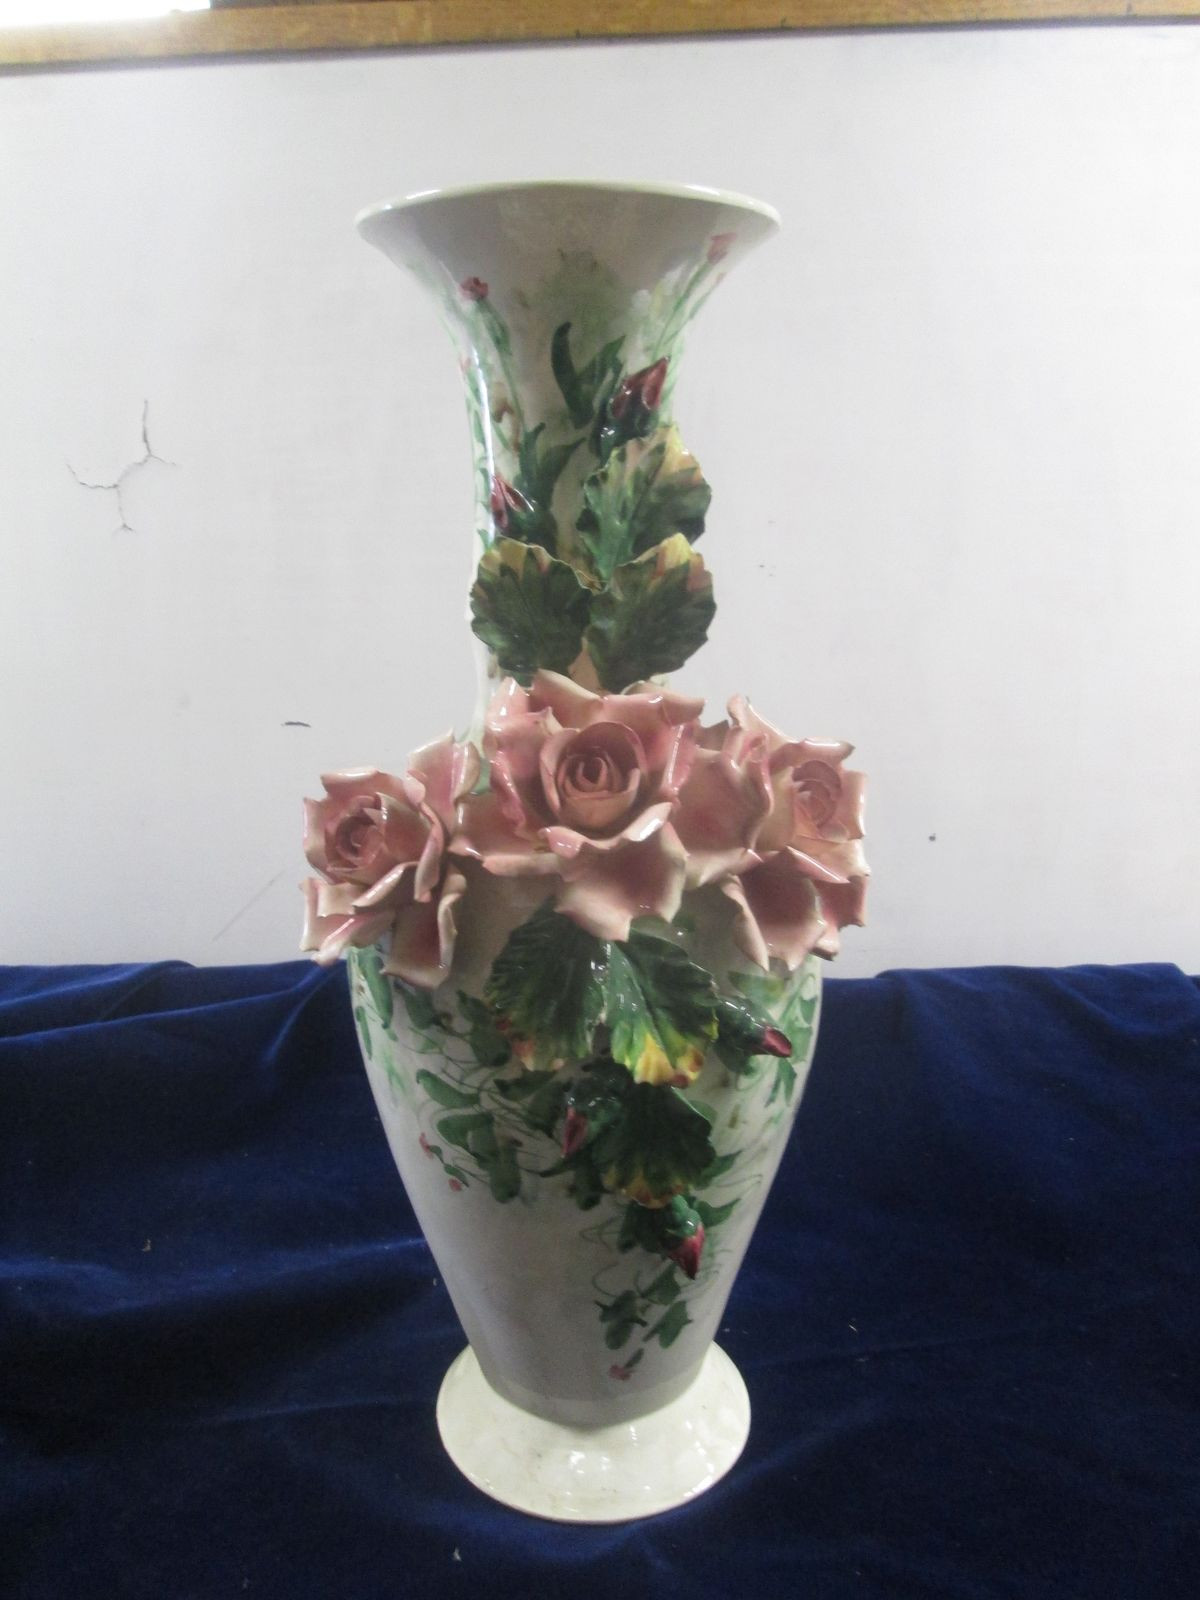 Vintage Capodimonte Vase Of Vtg Italian Pottery Capodimonte Vase Urn Huge 20t Relief Roses Throughout 1 Of 6only 1 Available